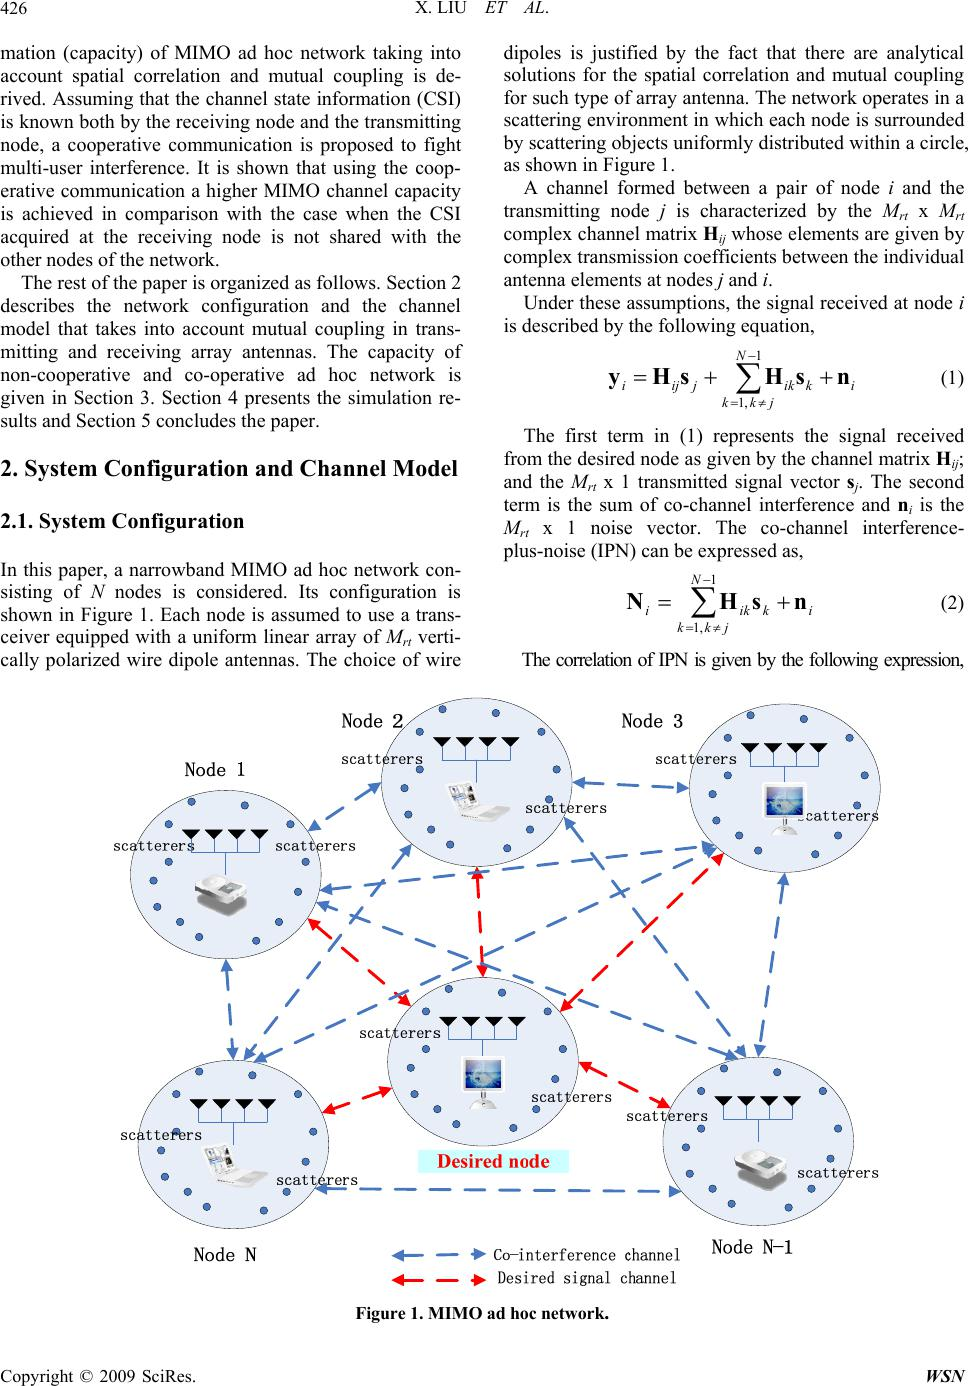 Investigations Into Capacity Of Mimo Ad Hoc Network Including Wiring Diagram X Liu Et Al